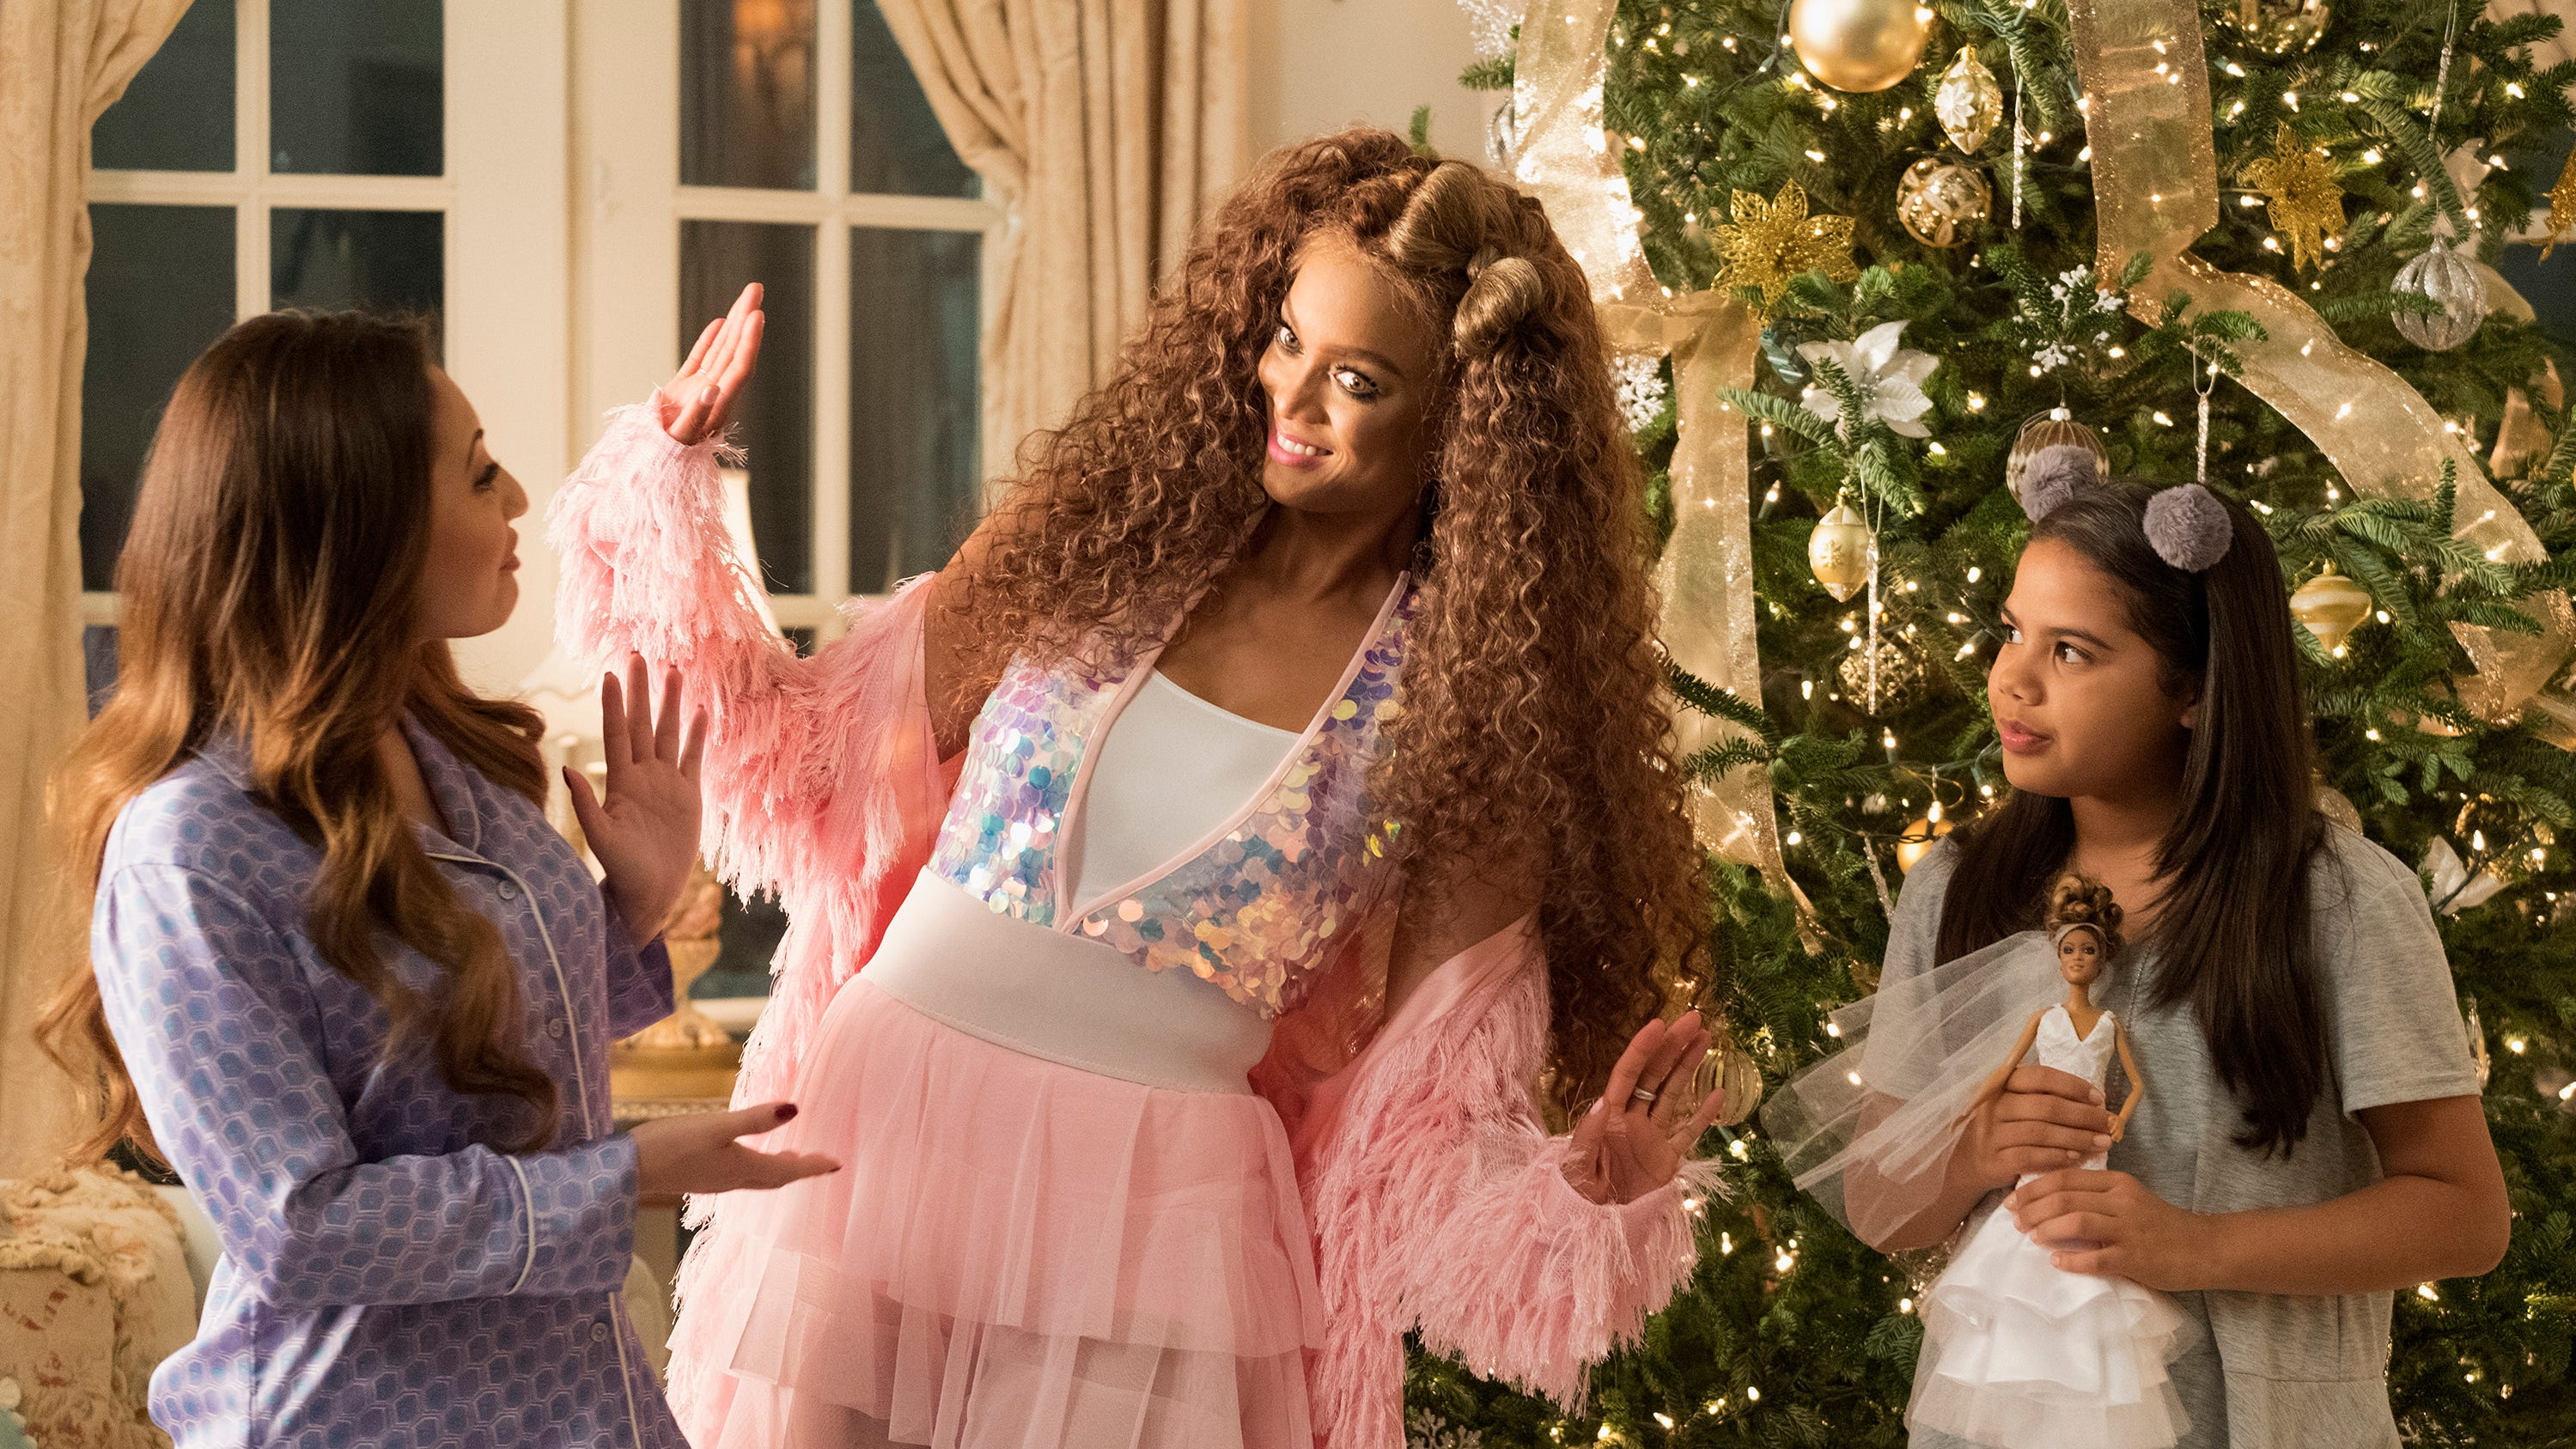 Life Size 2 A Christmas Eve Tyra Banks Sequel Is Totally Bonkers